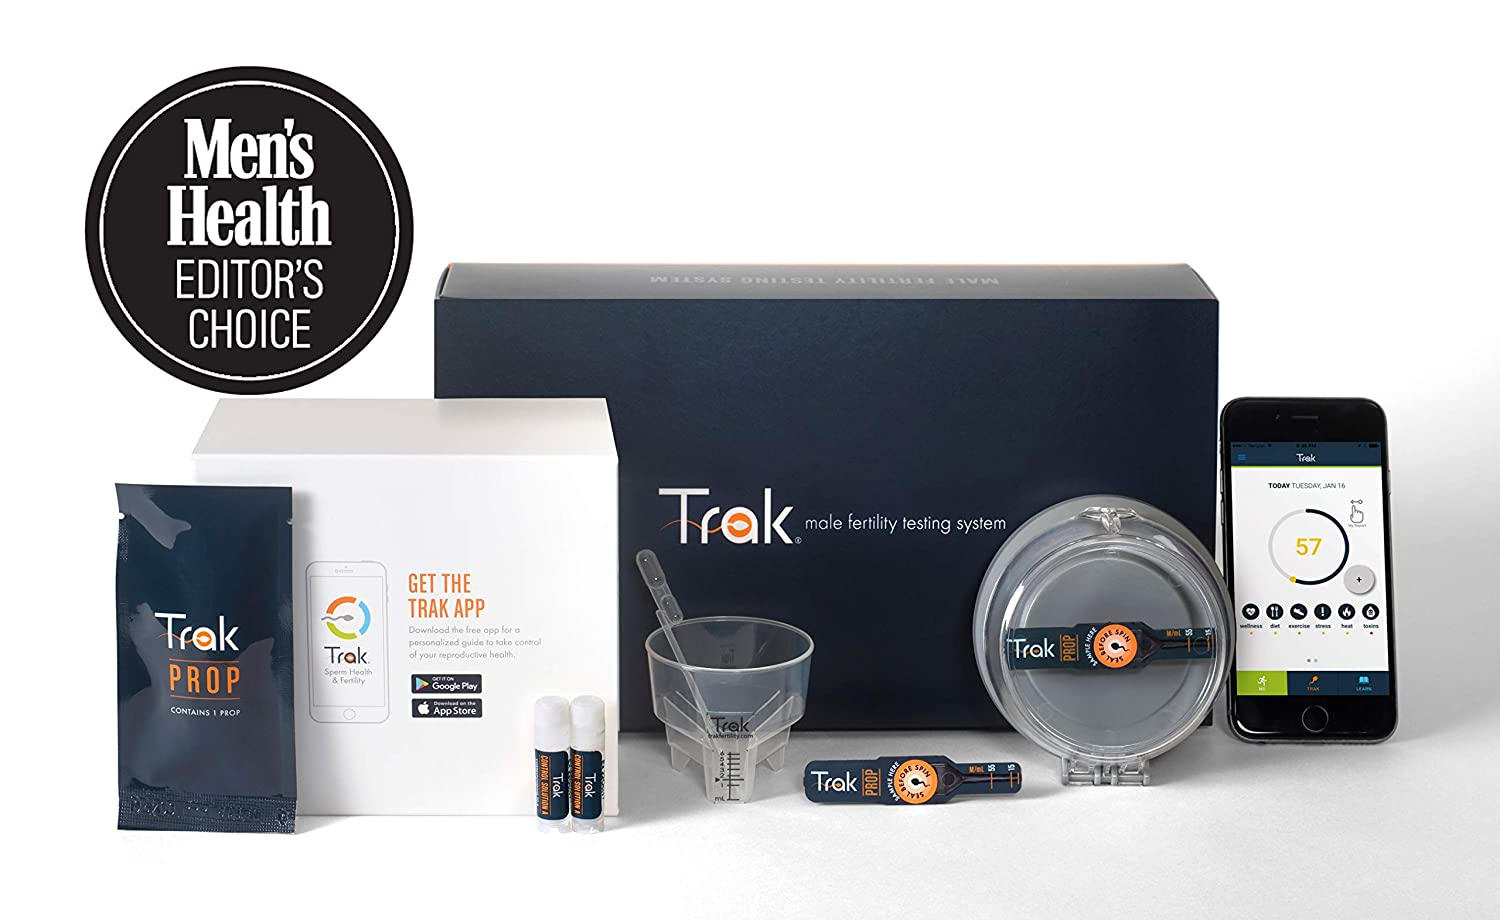 Trak Male Fertility Testing System: 2-Test Kit   Test Sperm Count and Semen Volume at Home   Indicates Results as Low, Moderate, or Optimal for Conception   FSA/HSA Eligible  Accurate as Lab Tests